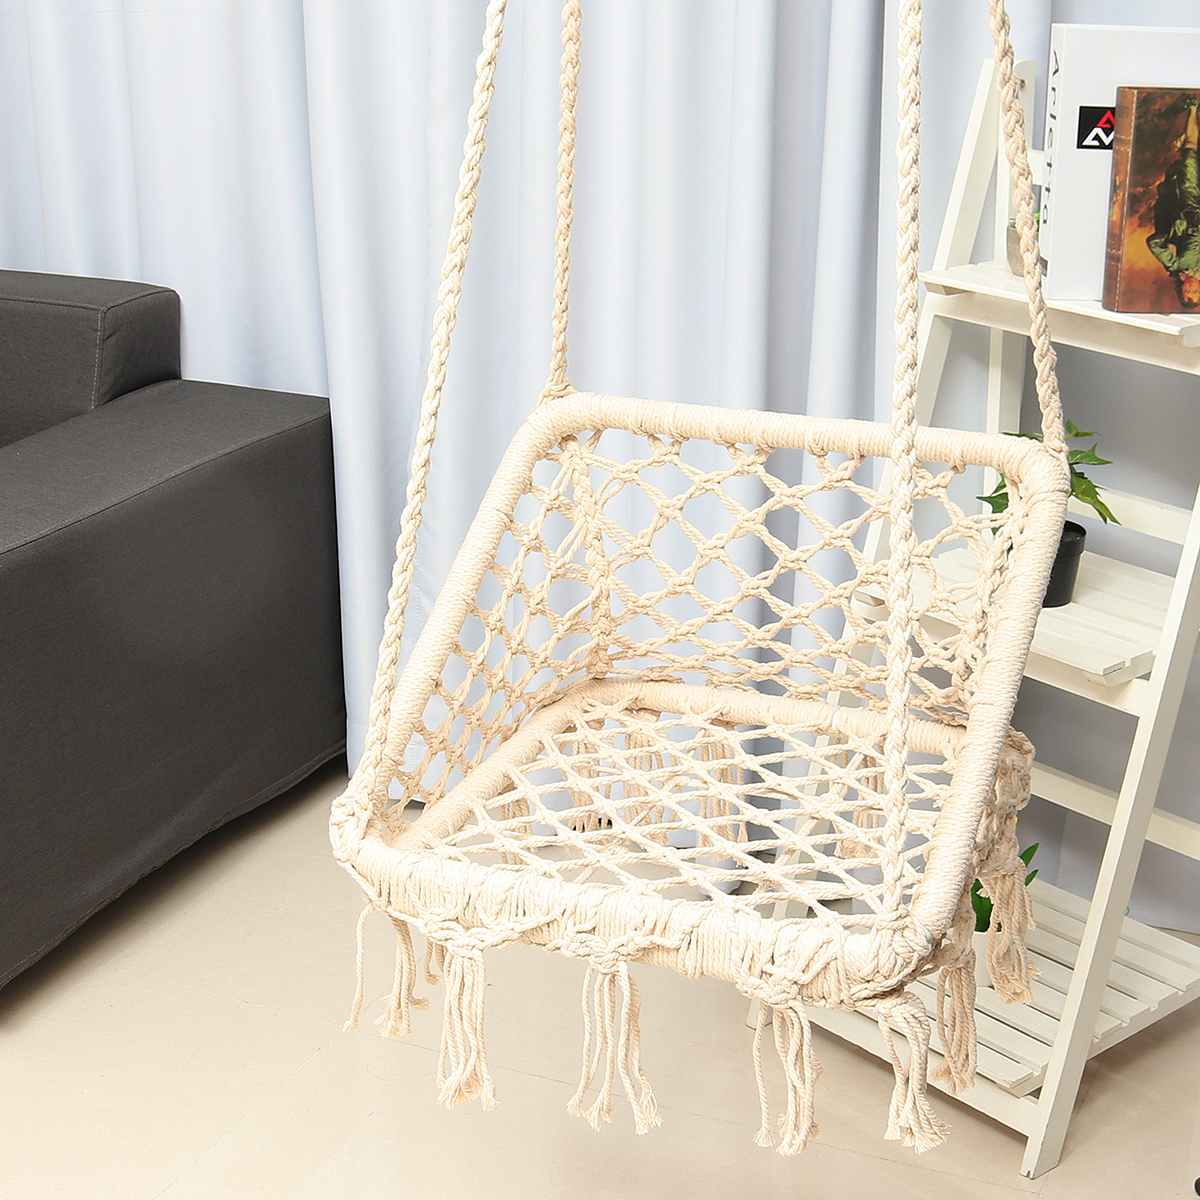 Nordic Hammock Chair Outdoor Indoor Dormitory Bedroom Yard For Child Adult Swinging Hanging Single Rope Safety Chair Hammock